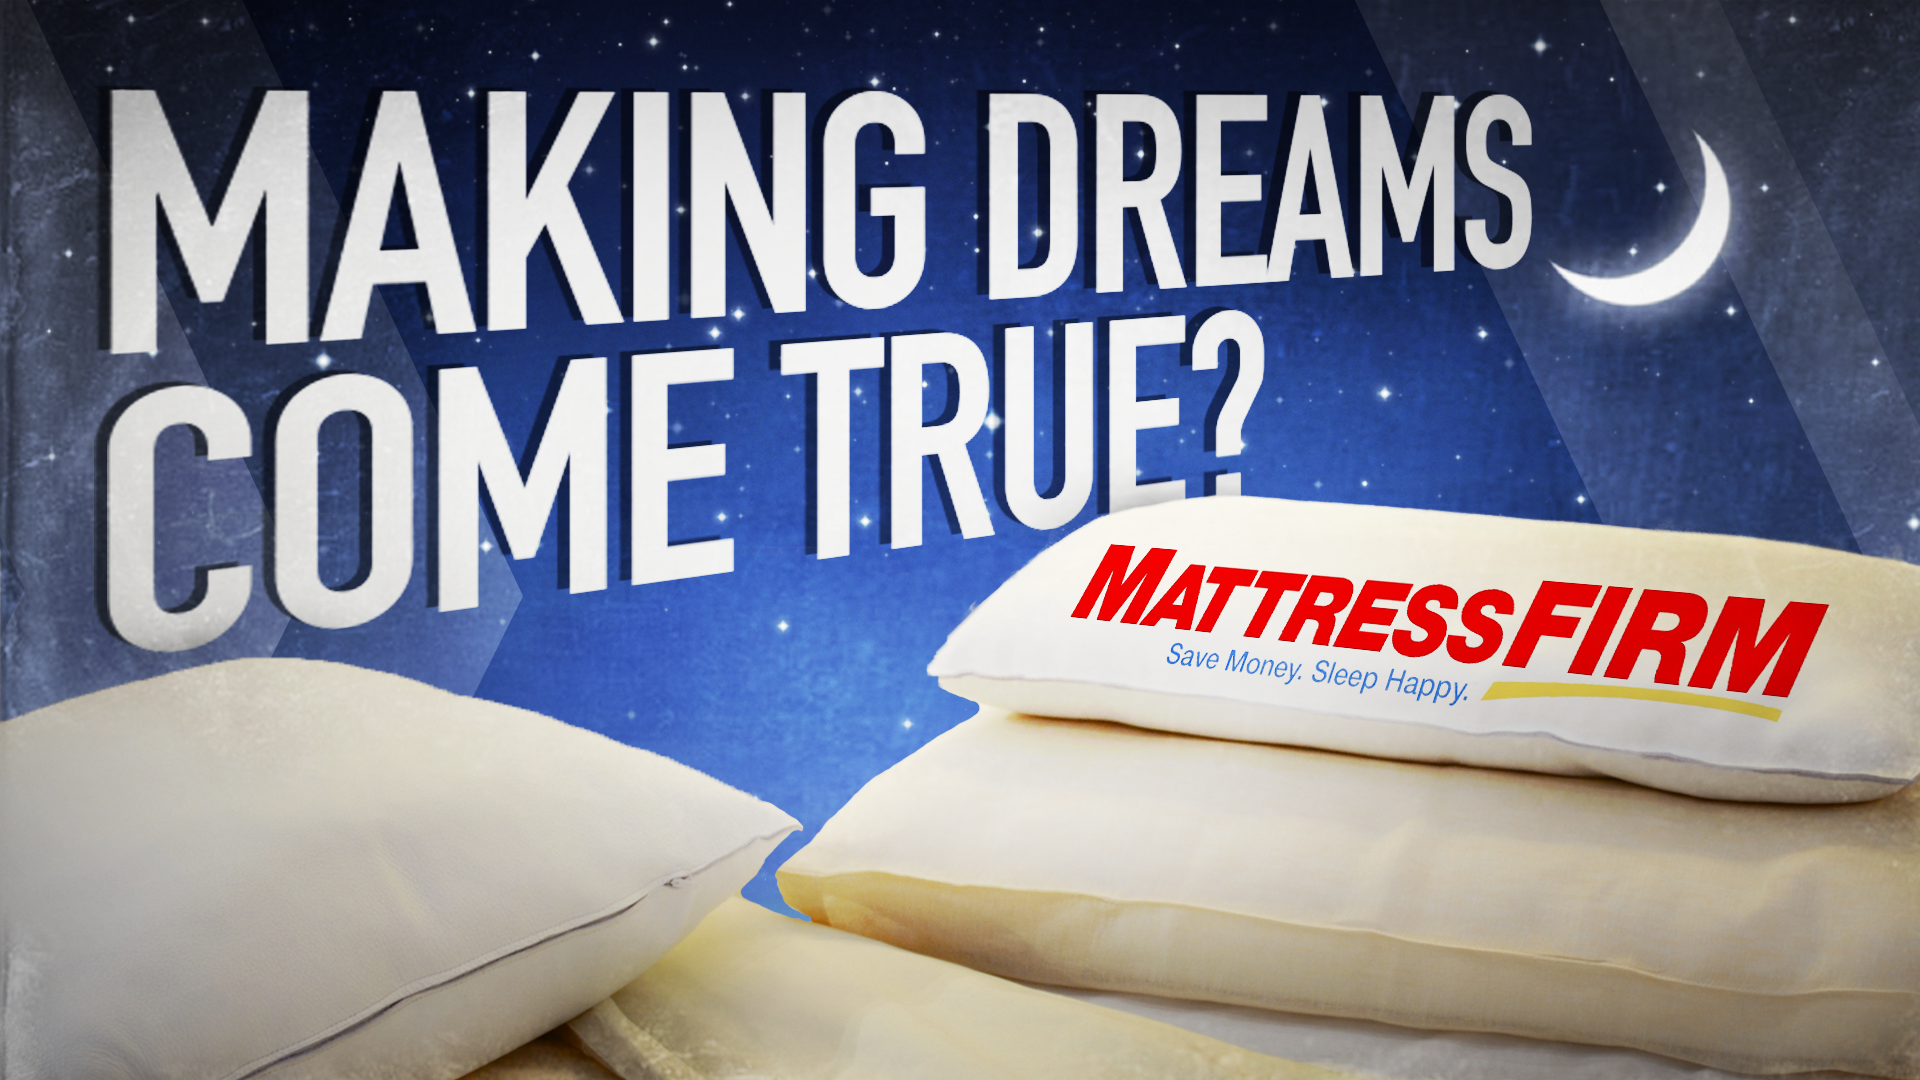 Permalink to Awesome Mattress Firm Corporate Number